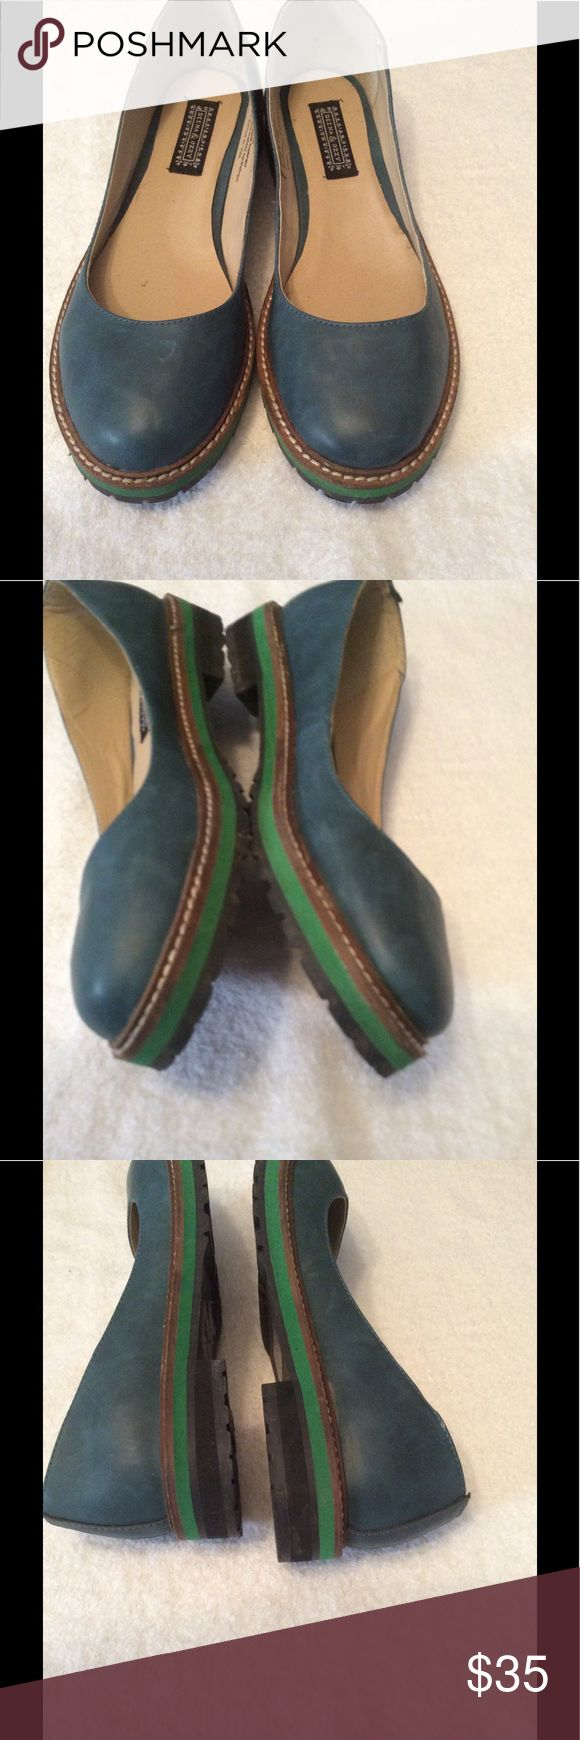 Deena&ozzy shoes Preloved  has some fine scratches nothing major otherwise nice Deena & Ozzy Shoes Flats & Loafers